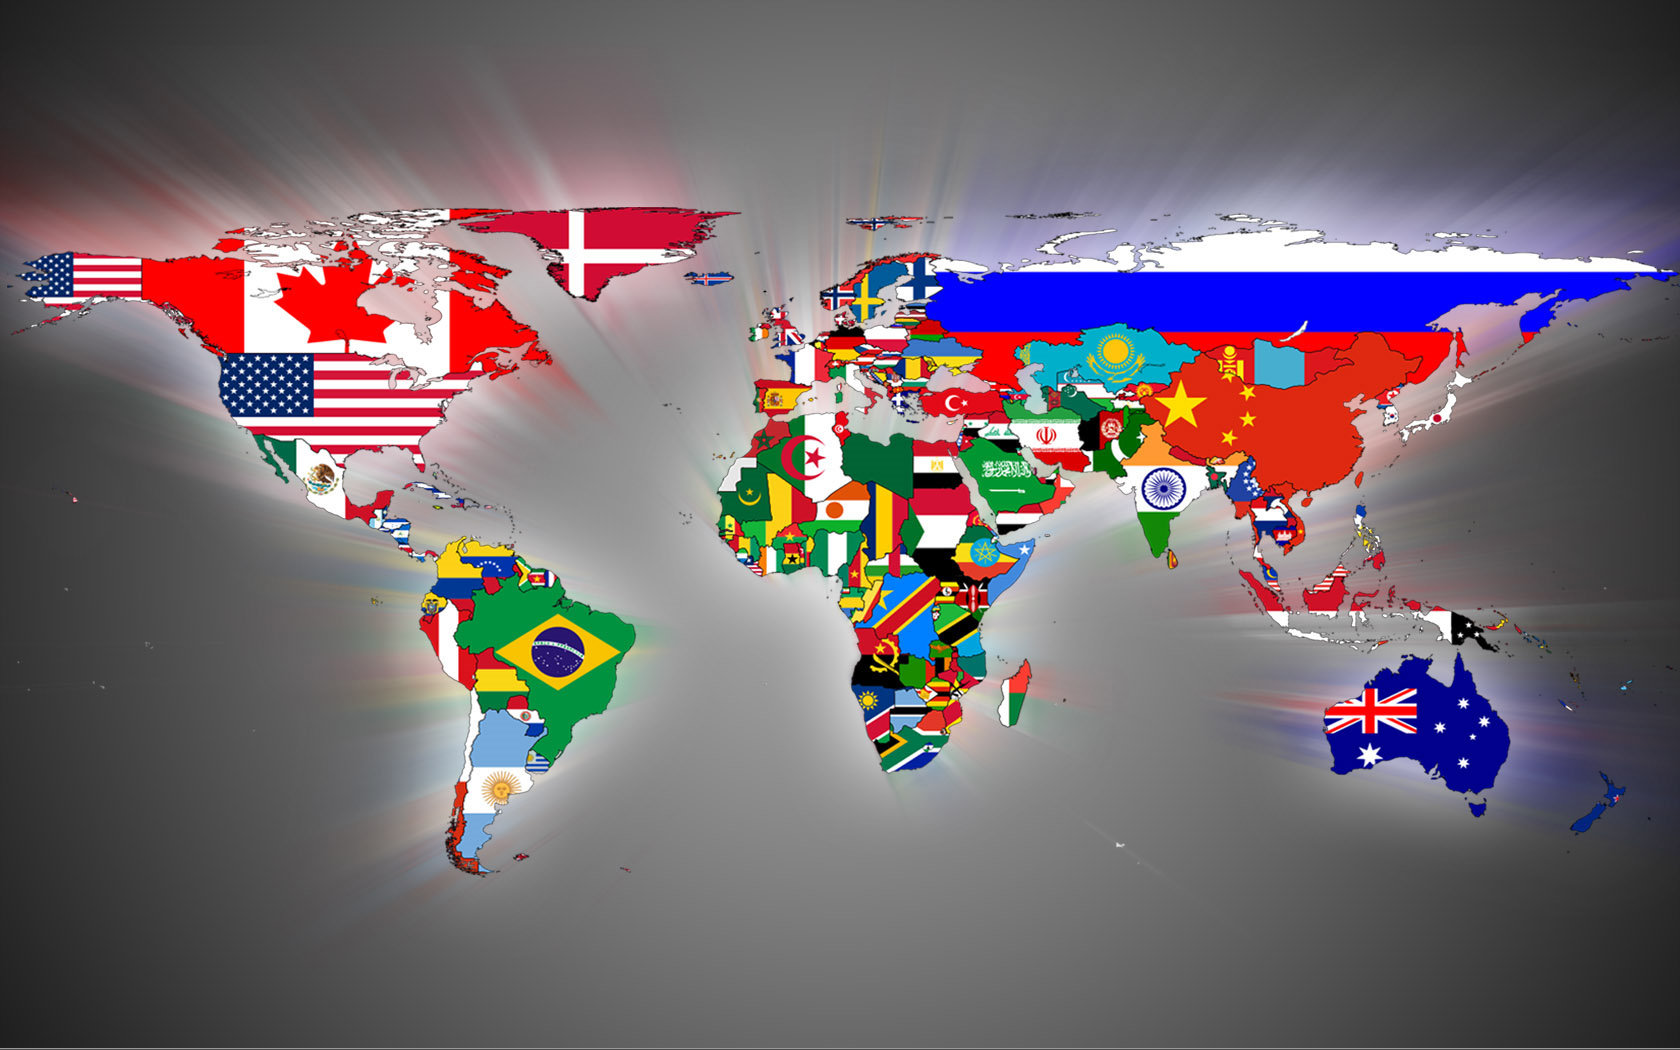 World map wallpaper 6248 1680x1050 px hdwallsource world map wallpaper 6248 gumiabroncs Choice Image